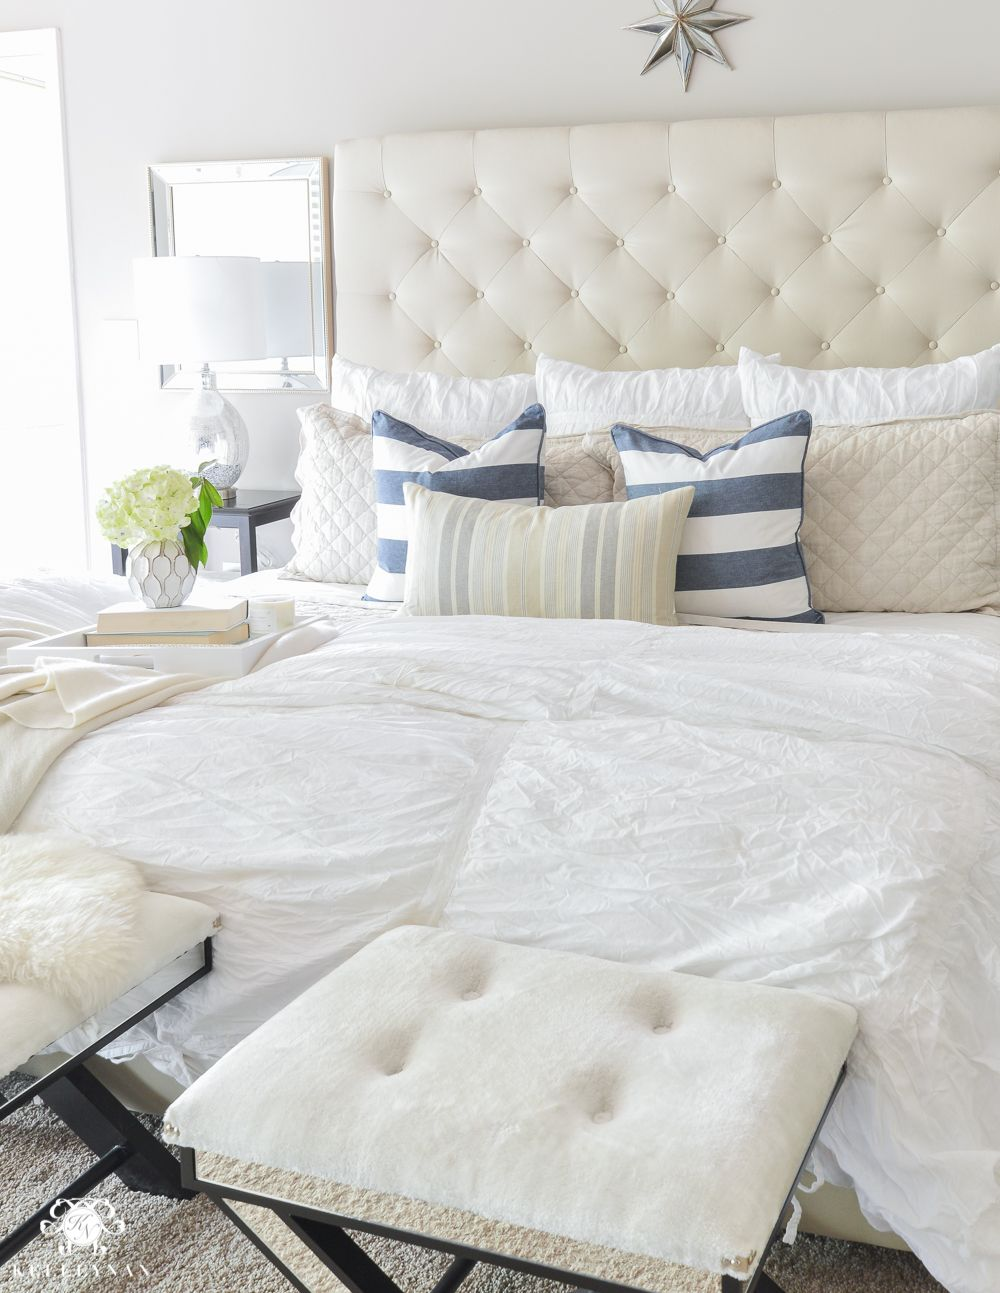 pottery barn lorraine bed on shades of summer home tour with neutrals and naturals kelley nan bedding inspiration guest bedroom decor summer house pinterest